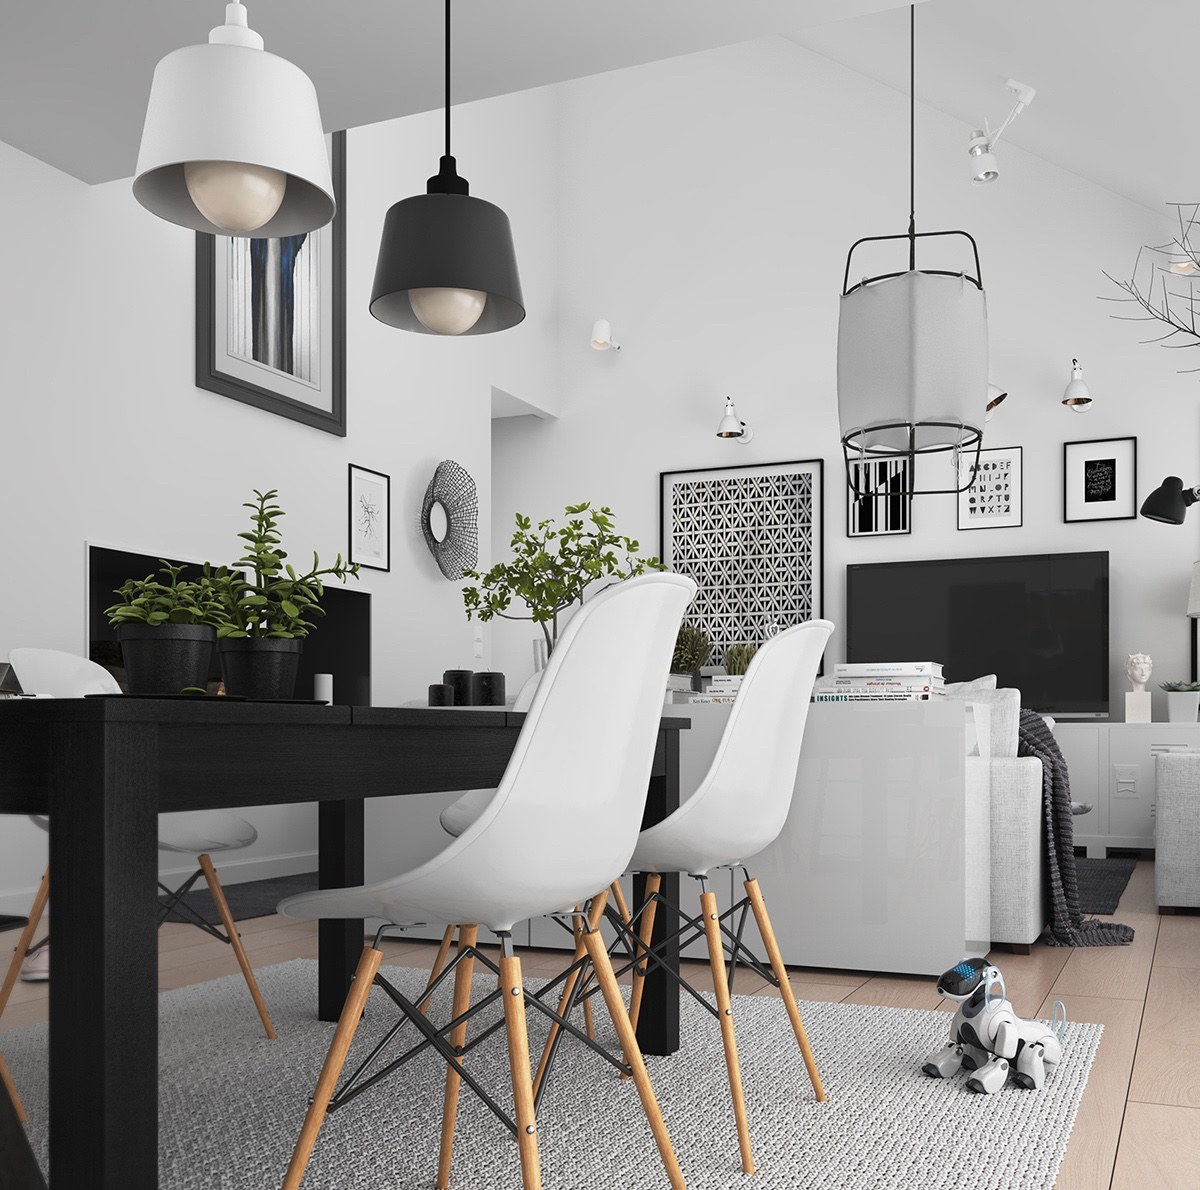 Simple and achievable scandinavian apartment designs 5 simple and achievable scandinavian apartment designs arubaitofo Image collections